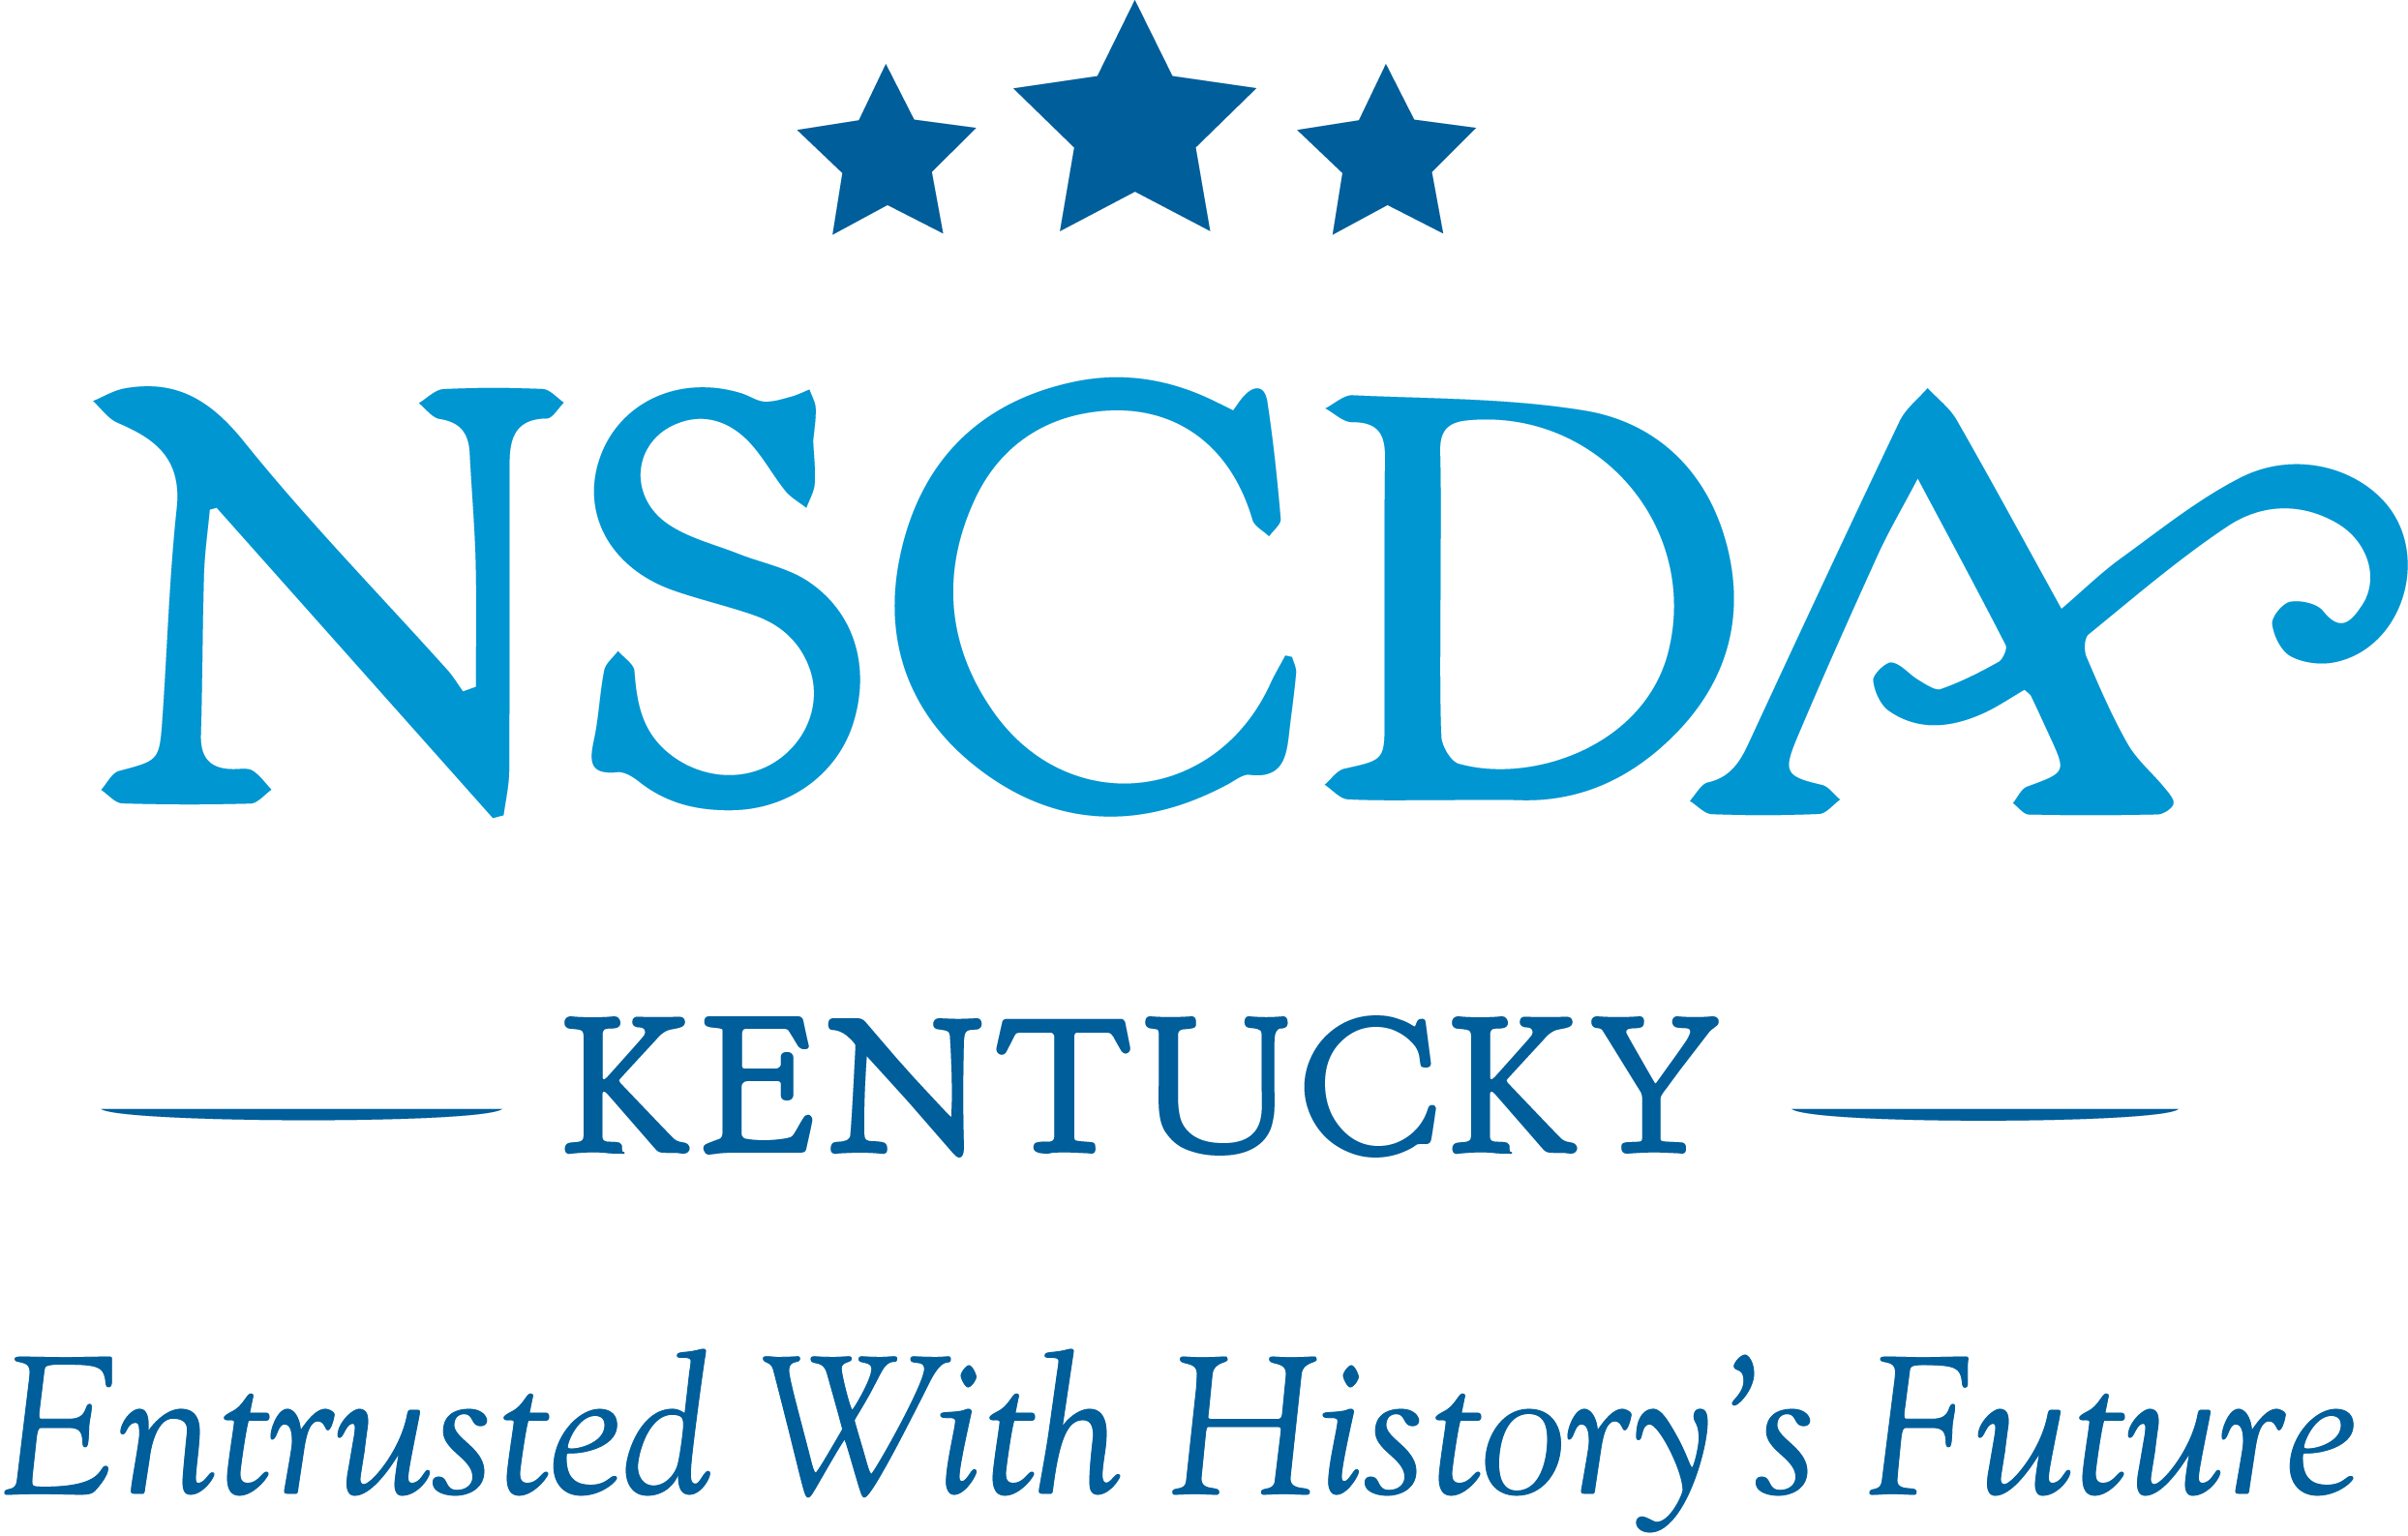 Copy of NSCDA KY logo 2018 1